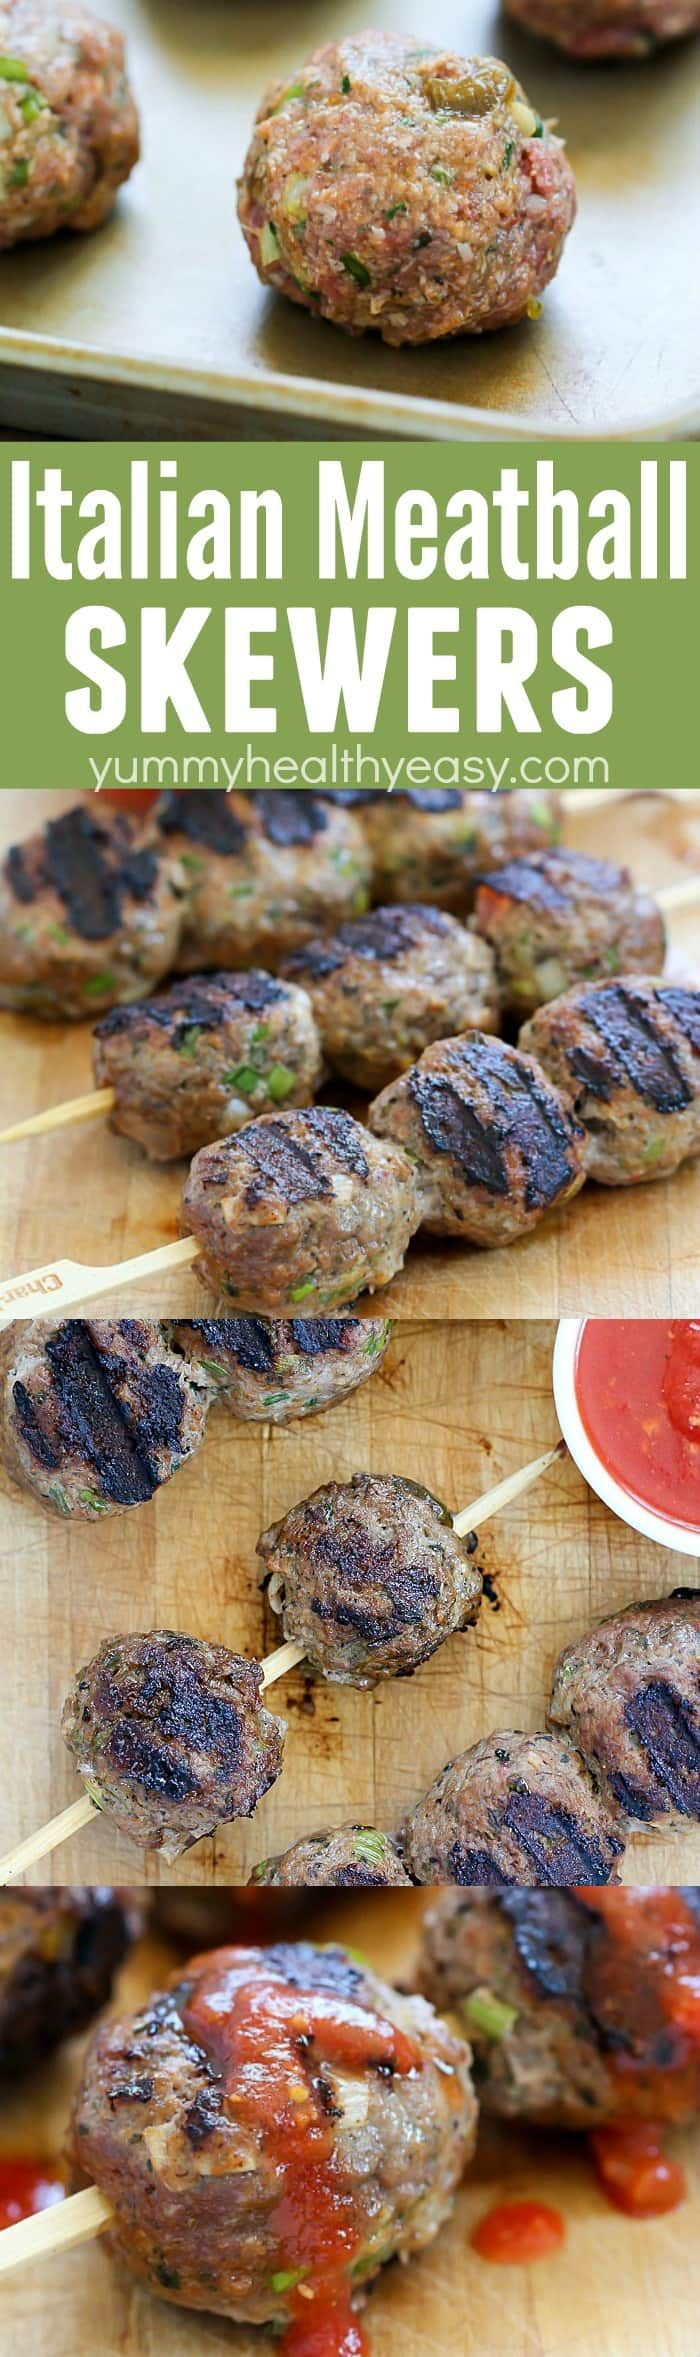 These flavorful Italian Meatballs are skewered onto sticks and grilled. This versatile dinner can be dipped in pasta sauce for a delicious low carb dinner, served on rolls for meatball sandwiches or over spaghetti! Definitely a family pleasing dinner! AD